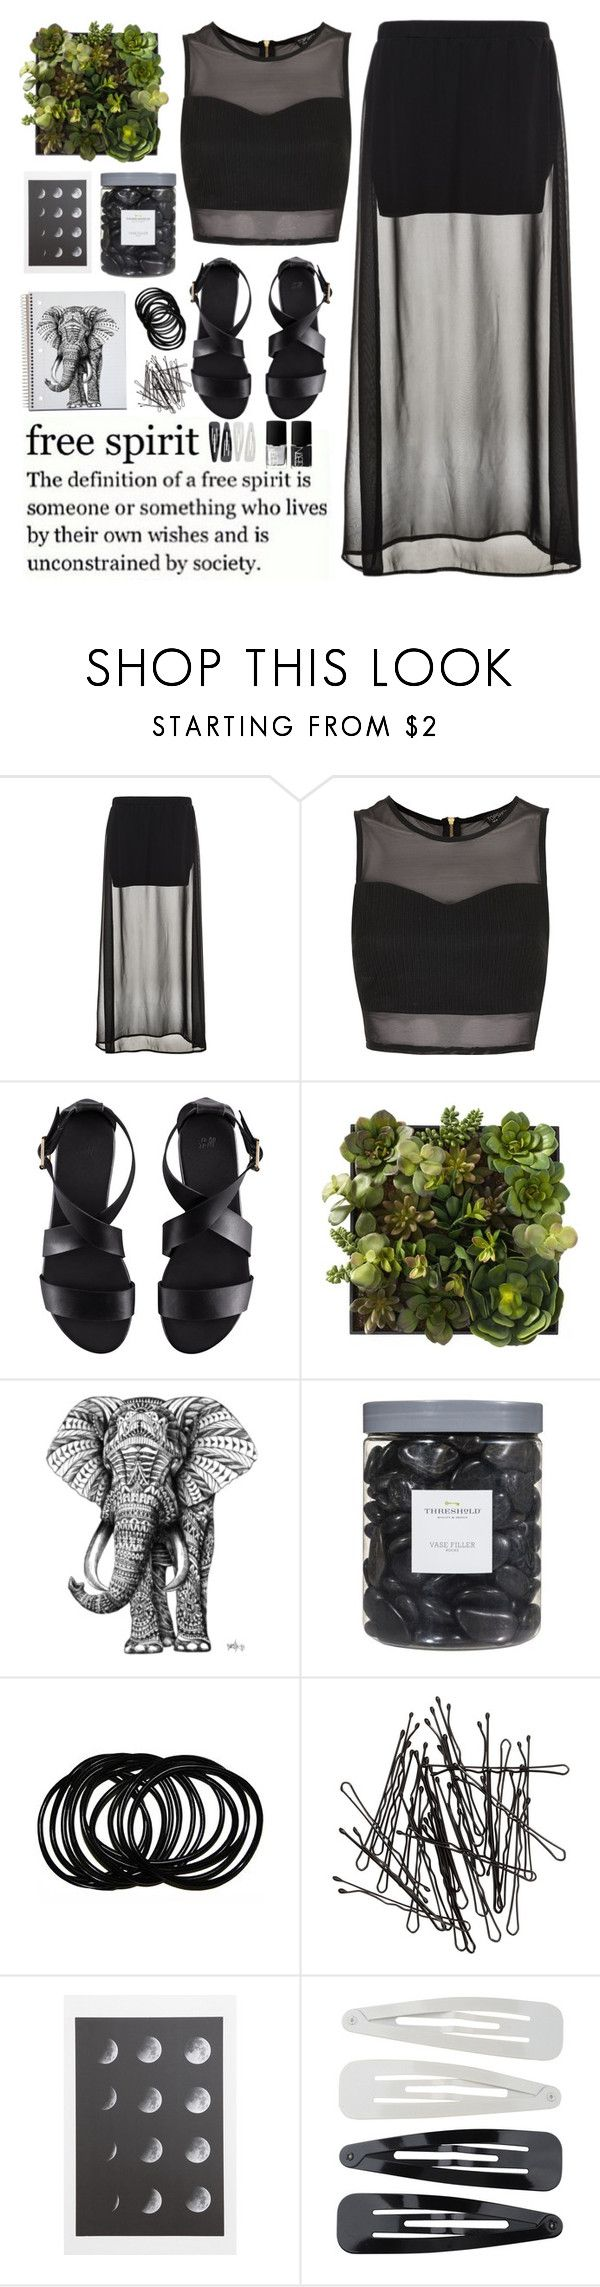 """free spirit"" by vanessadxy ❤ liked on Polyvore featuring Benetton, Topshop, H&M, Threshold, Forever 21, NARS Cosmetics, black, simpleset, definition and creative"